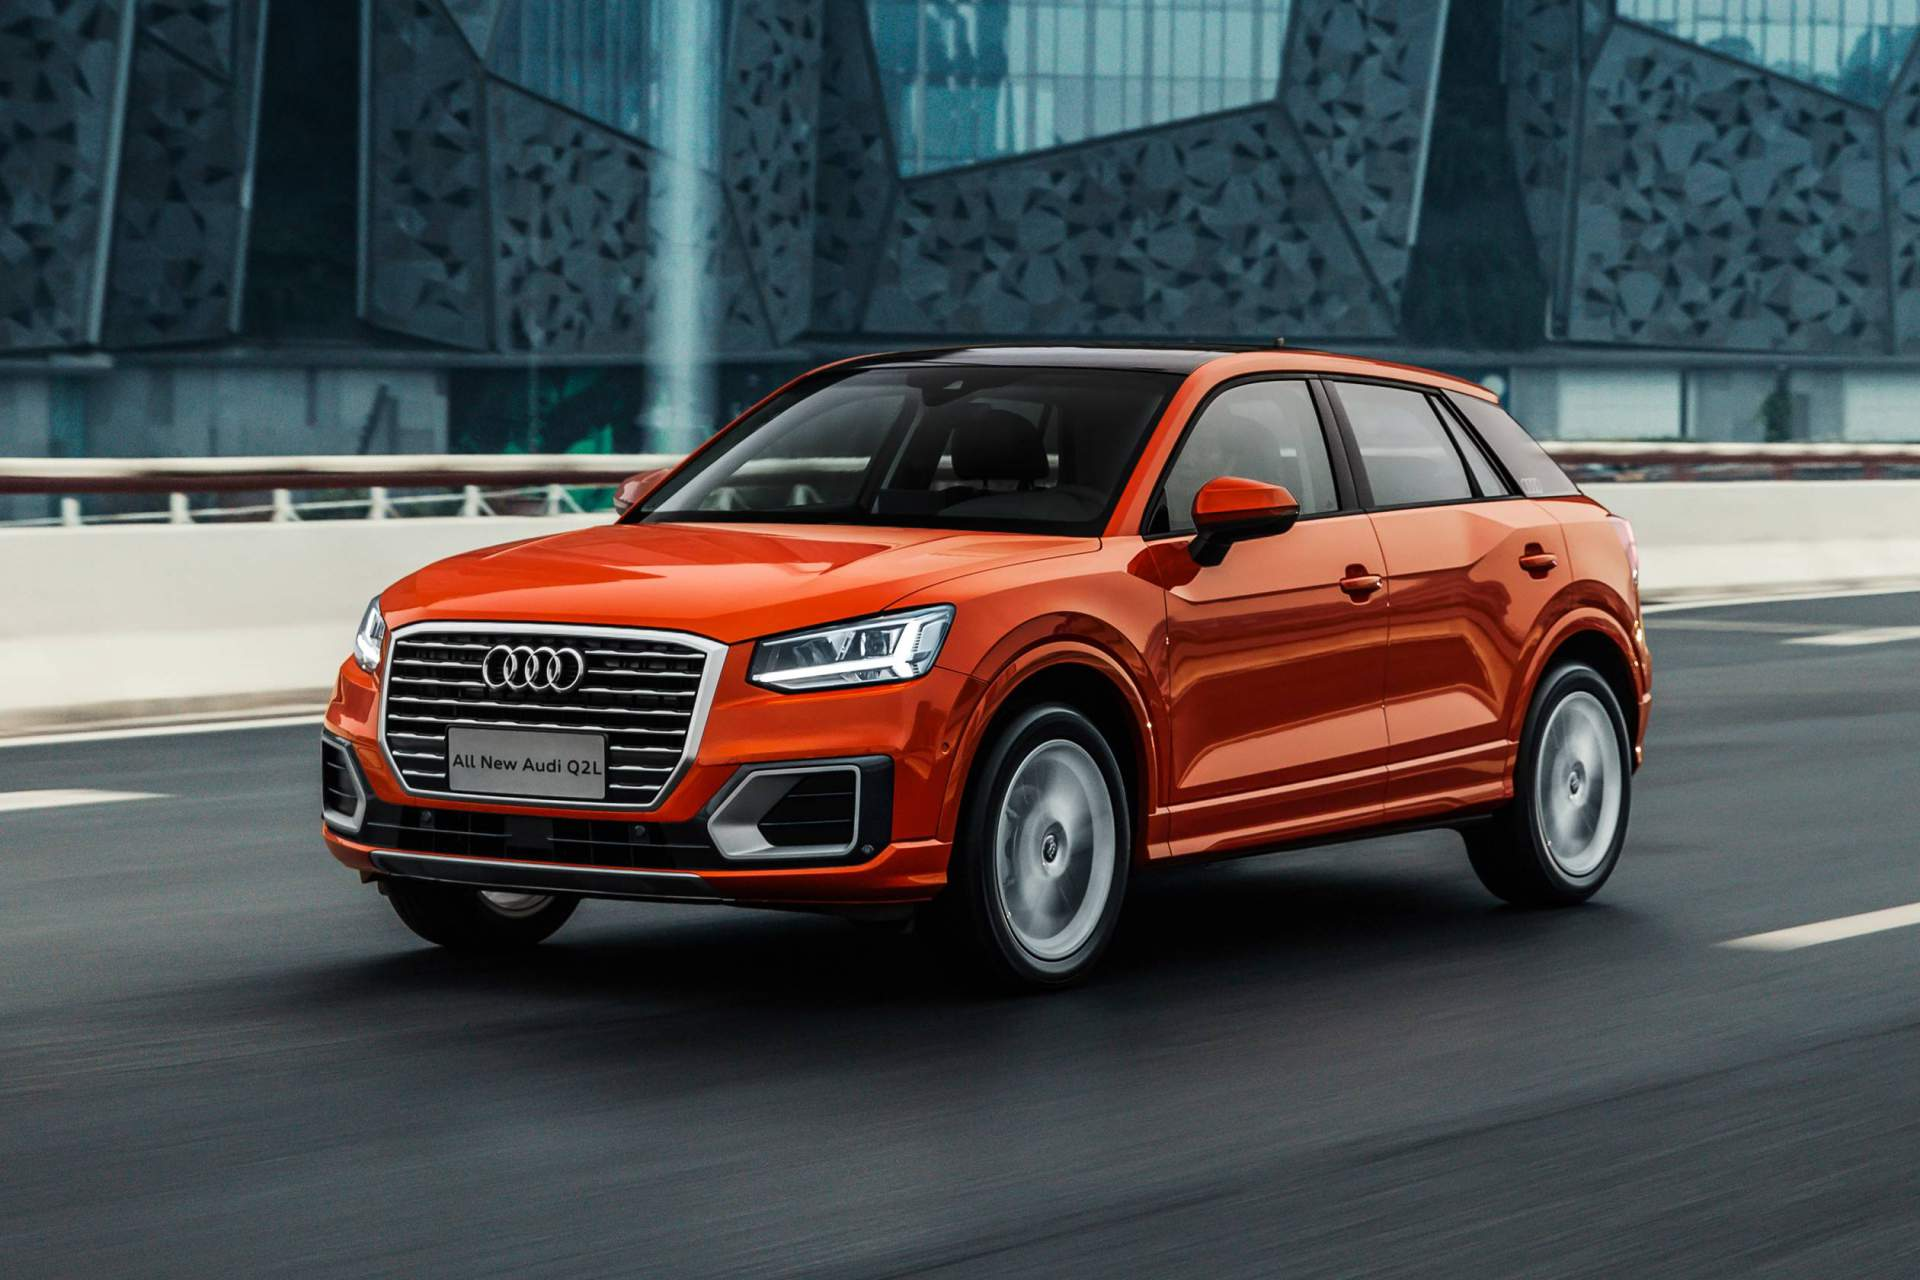 Electric Audi Q2 L e-tron to Be Launched in China in 2019 - autoevolution